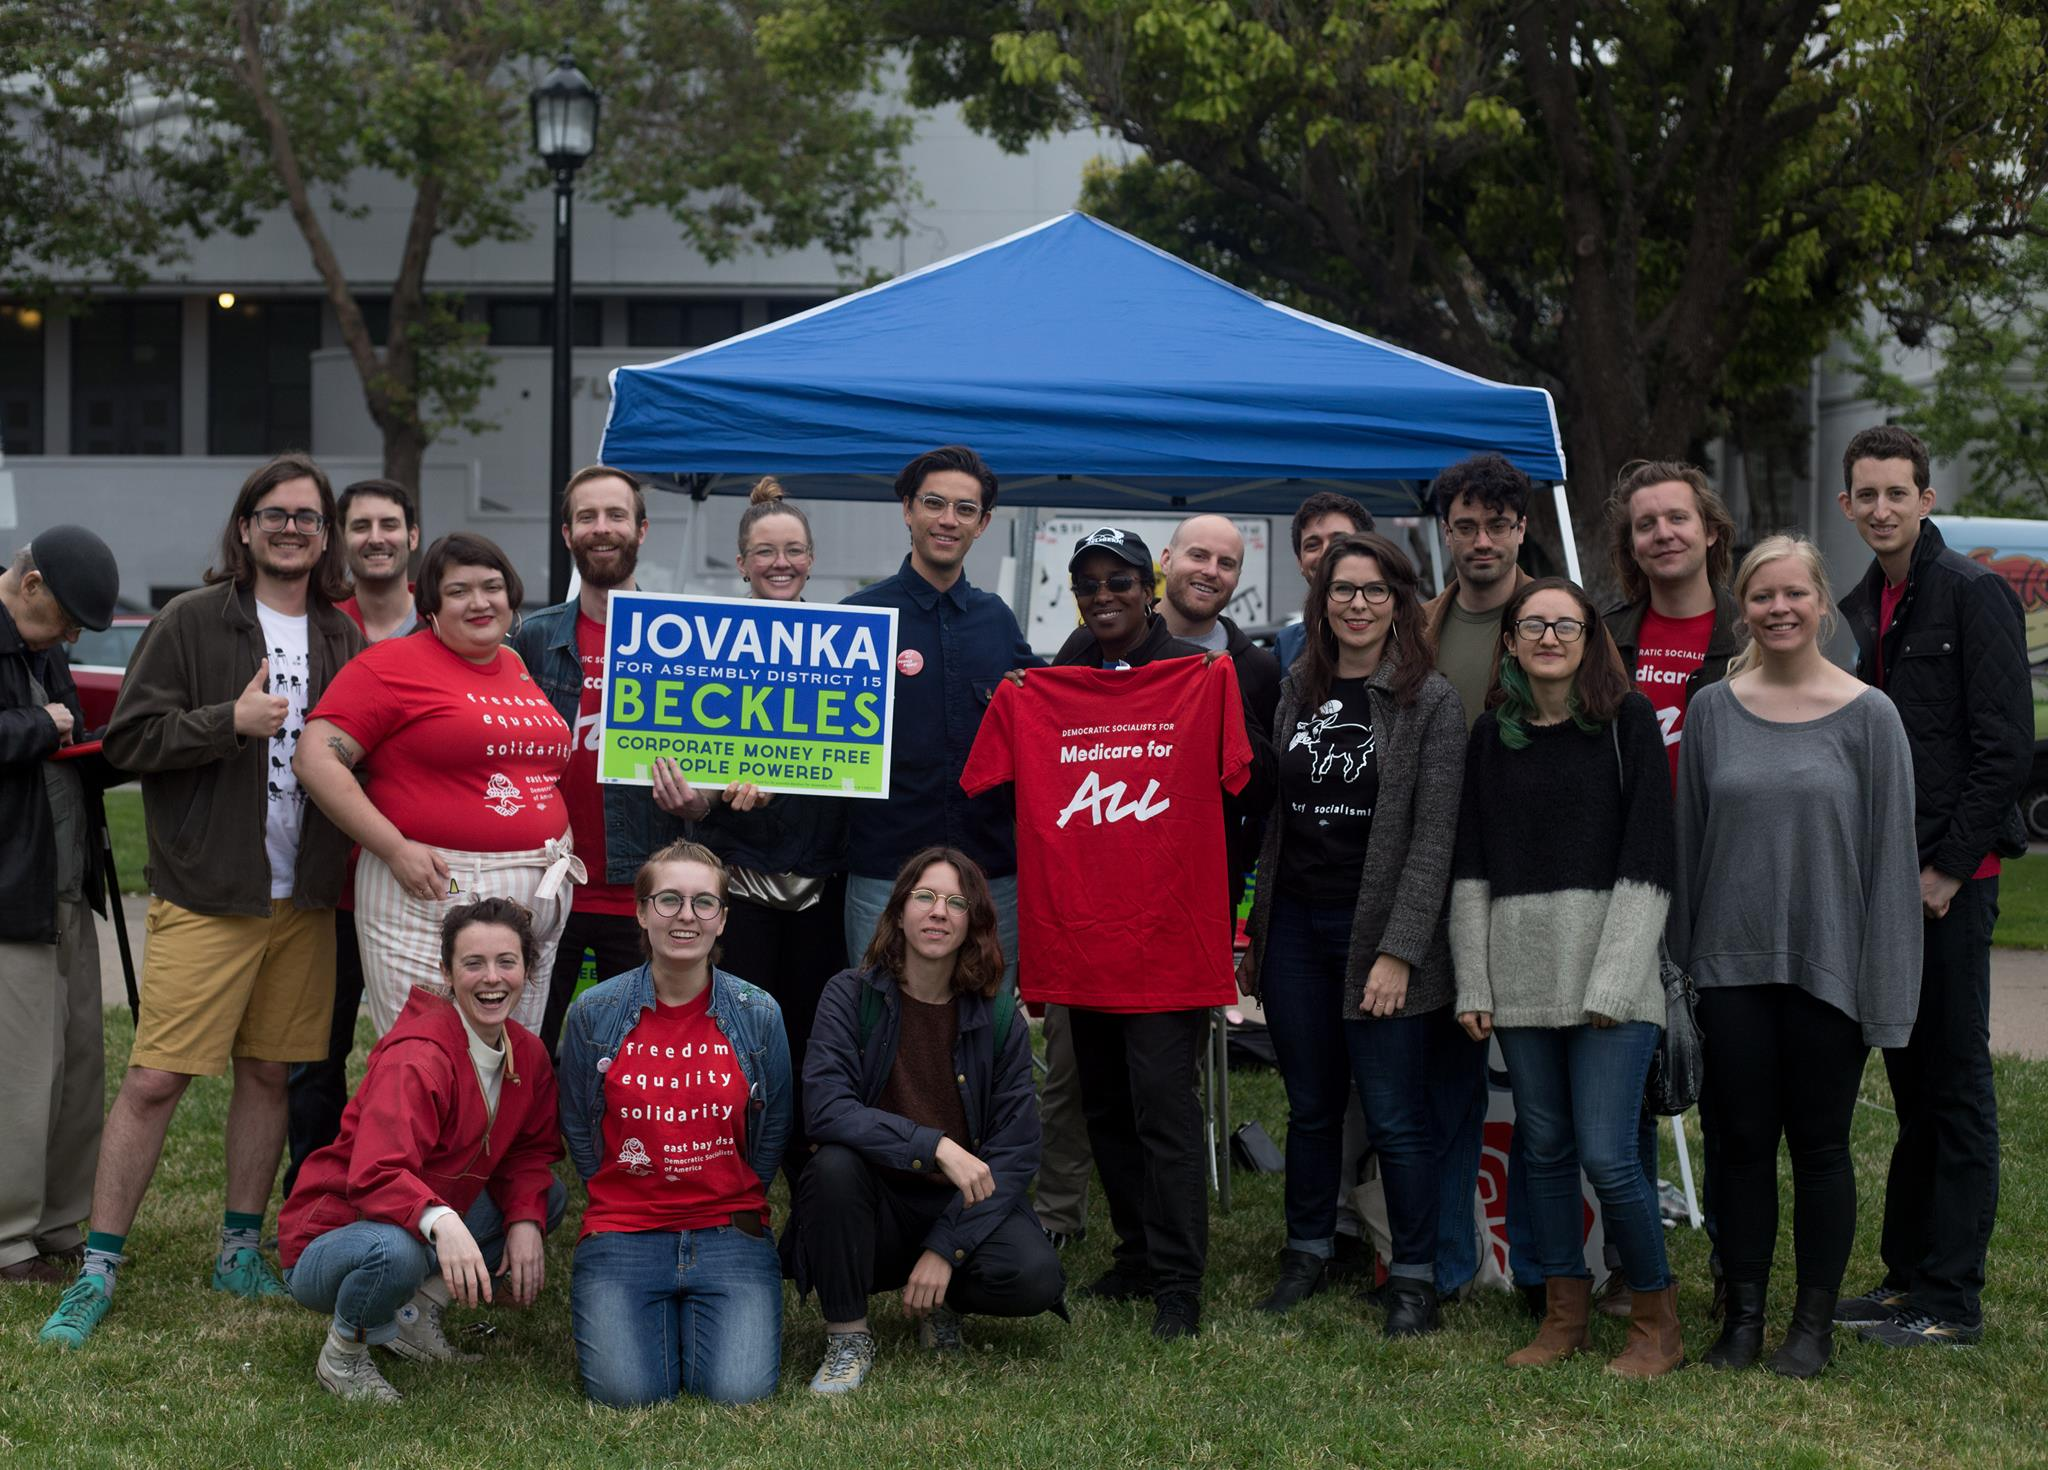 Jovanka Beckles and East Bay DSA